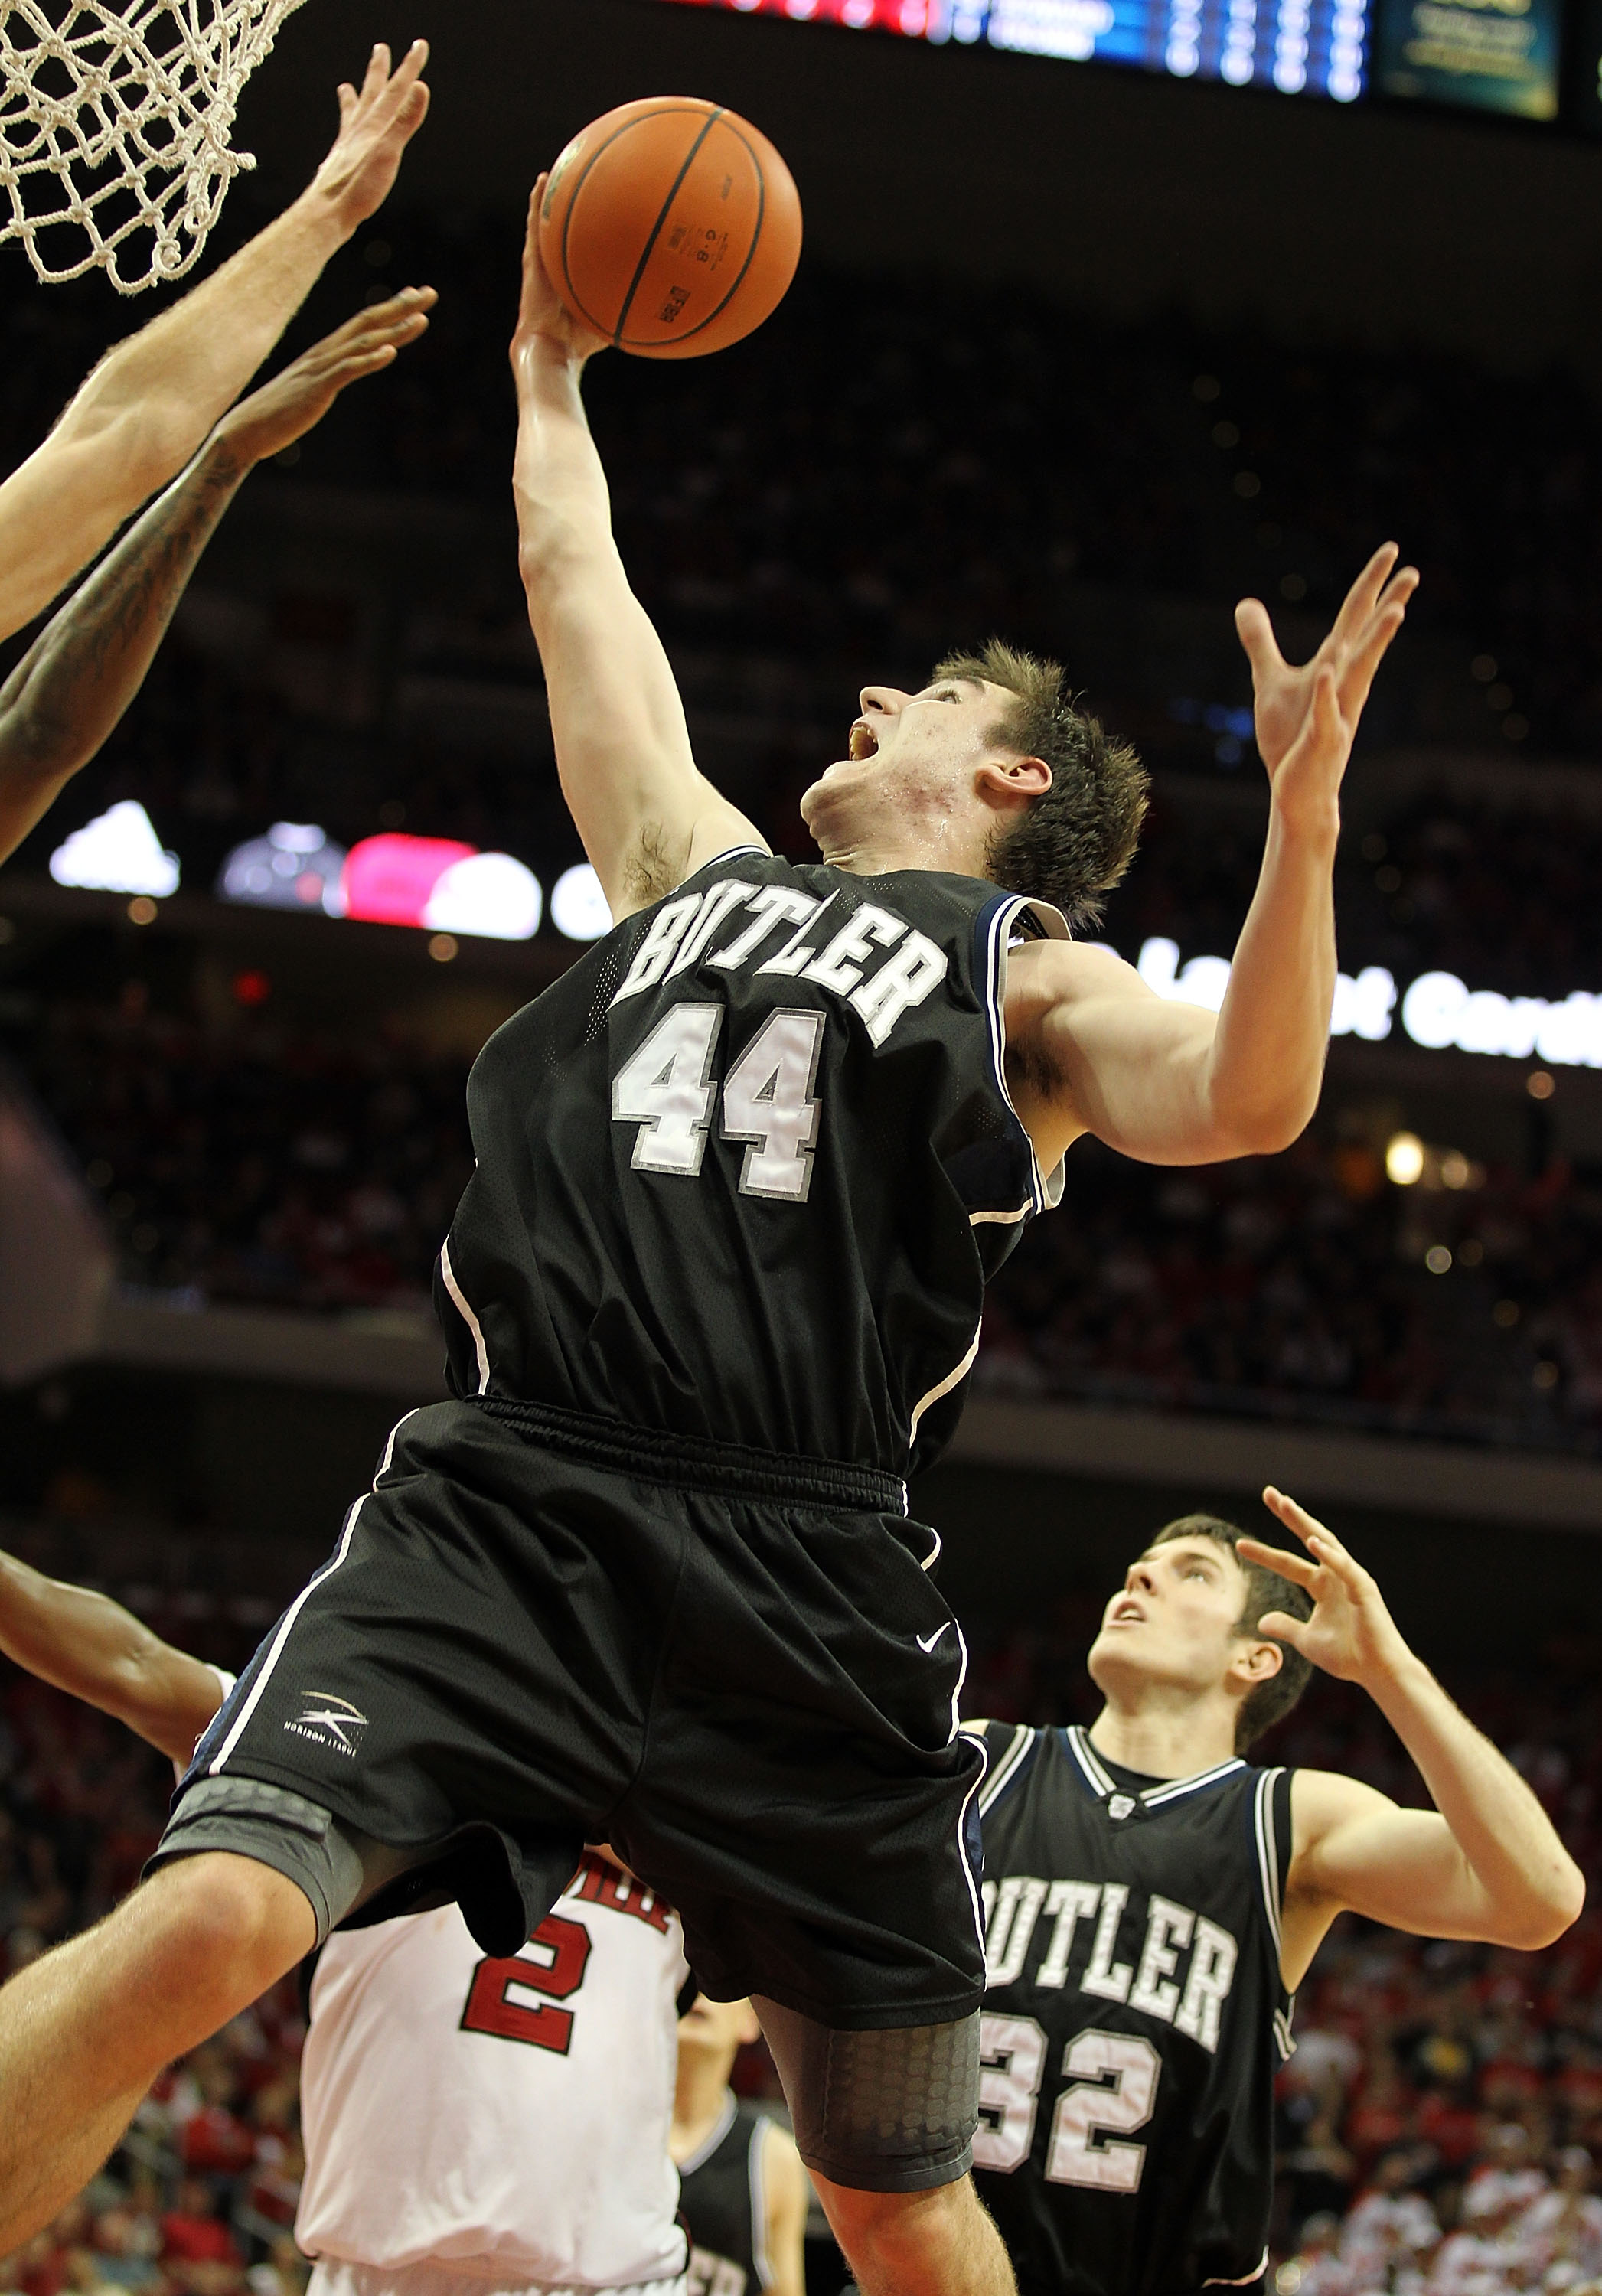 LOUISVILLE, KY - NOVEMBER 16: Matt Howard #54  of the Butler Bulldogs grabs a rebound during the game against the Louisville Cardinals at the KFC Yum! Center on November 16, 2010 in Louisville, Kentucky.  (Photo by Andy Lyons/Getty Images)